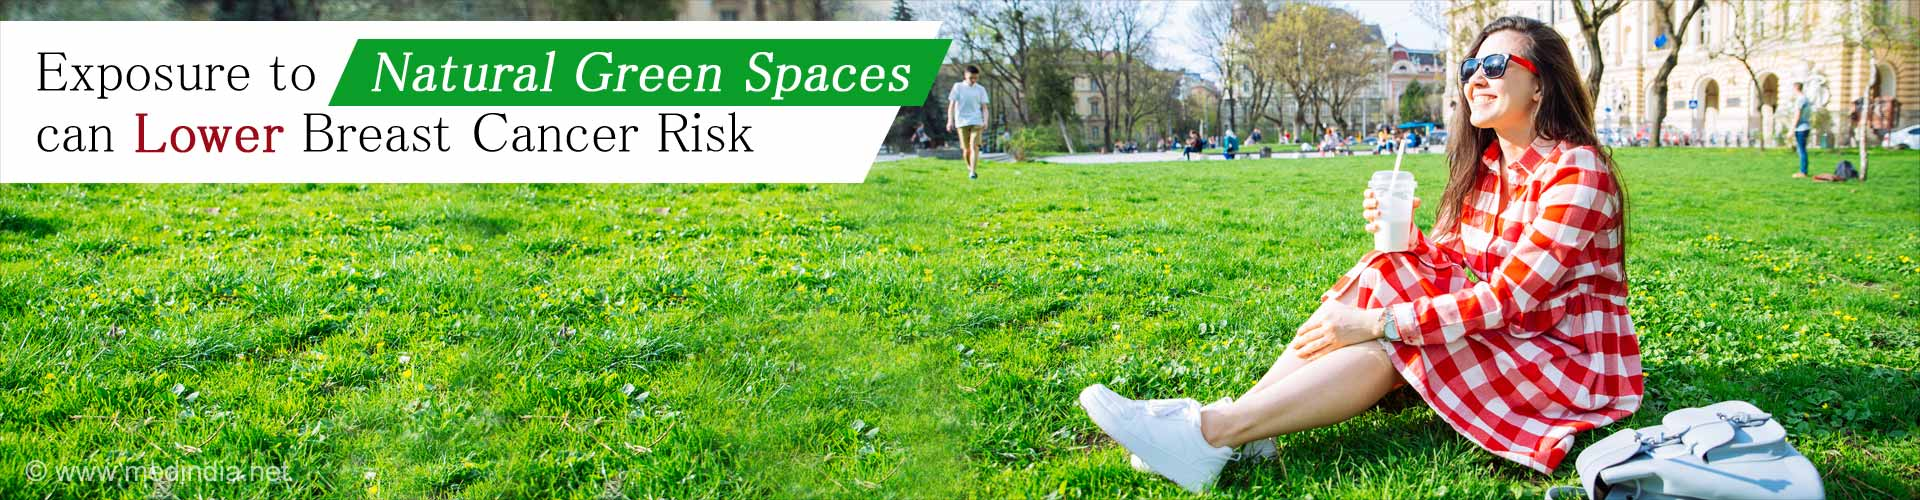 Women Living Close to Urban Green Spaces at Lower Breast Cancer Risk